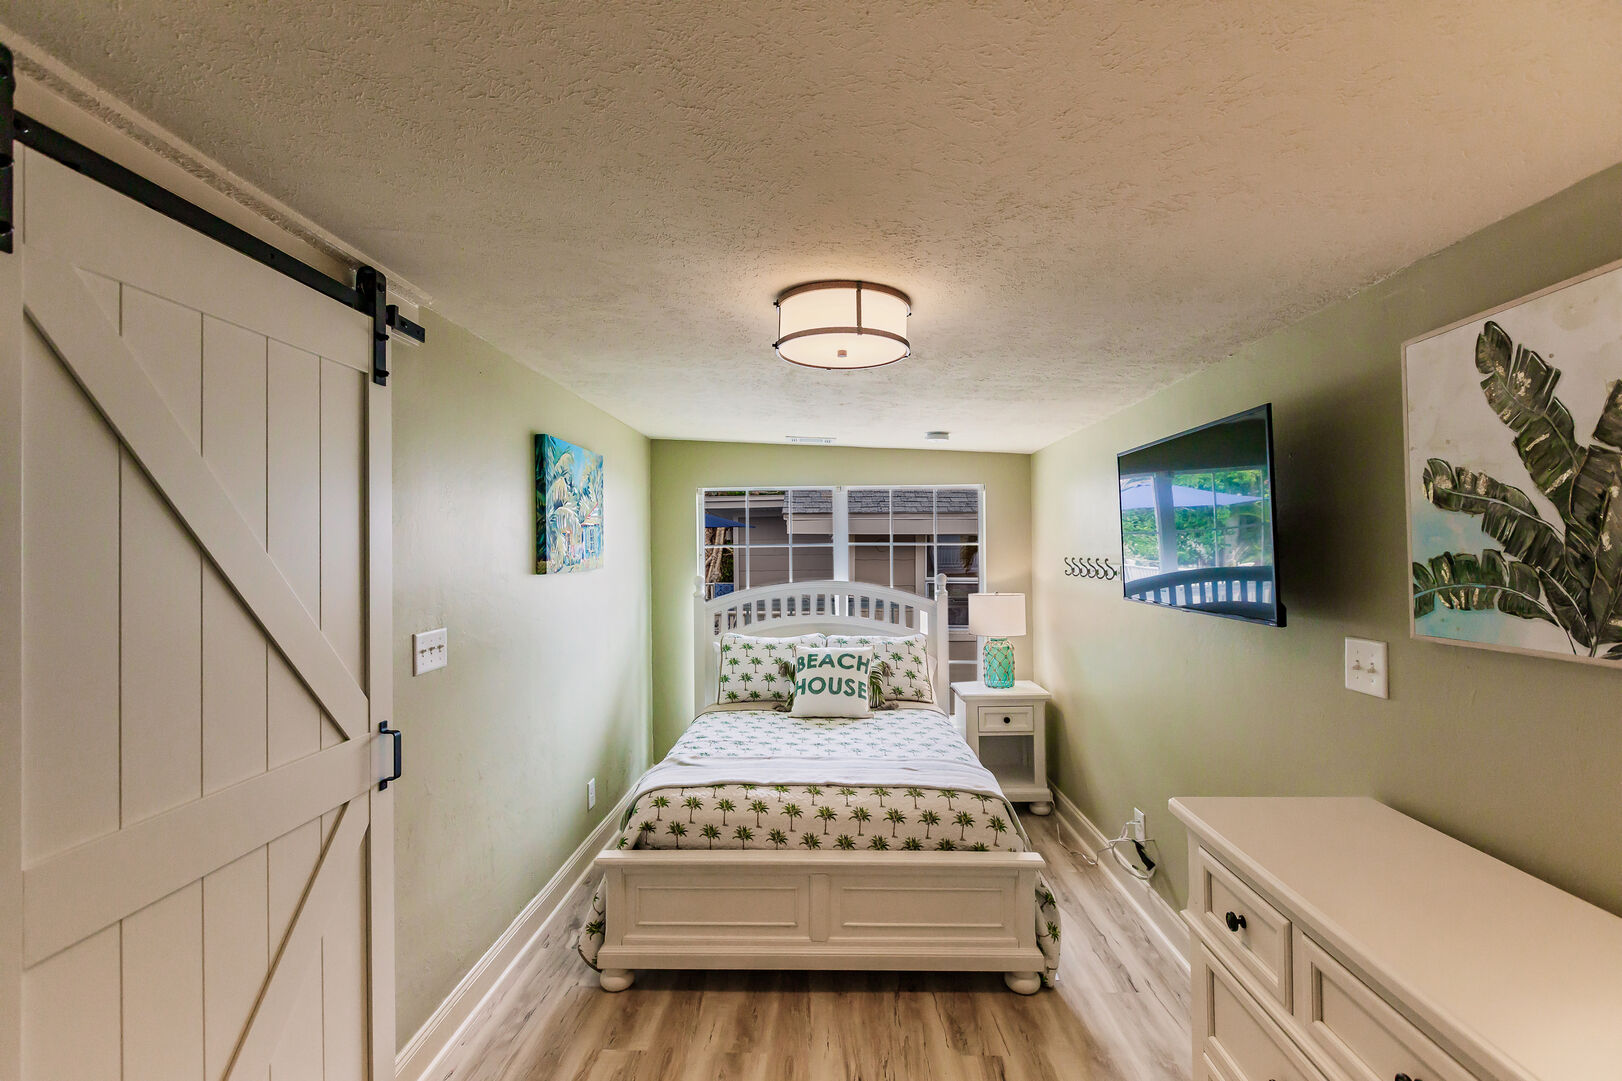 Small Private Bedroom with TV and Closet Private Beach House Rental in Florida